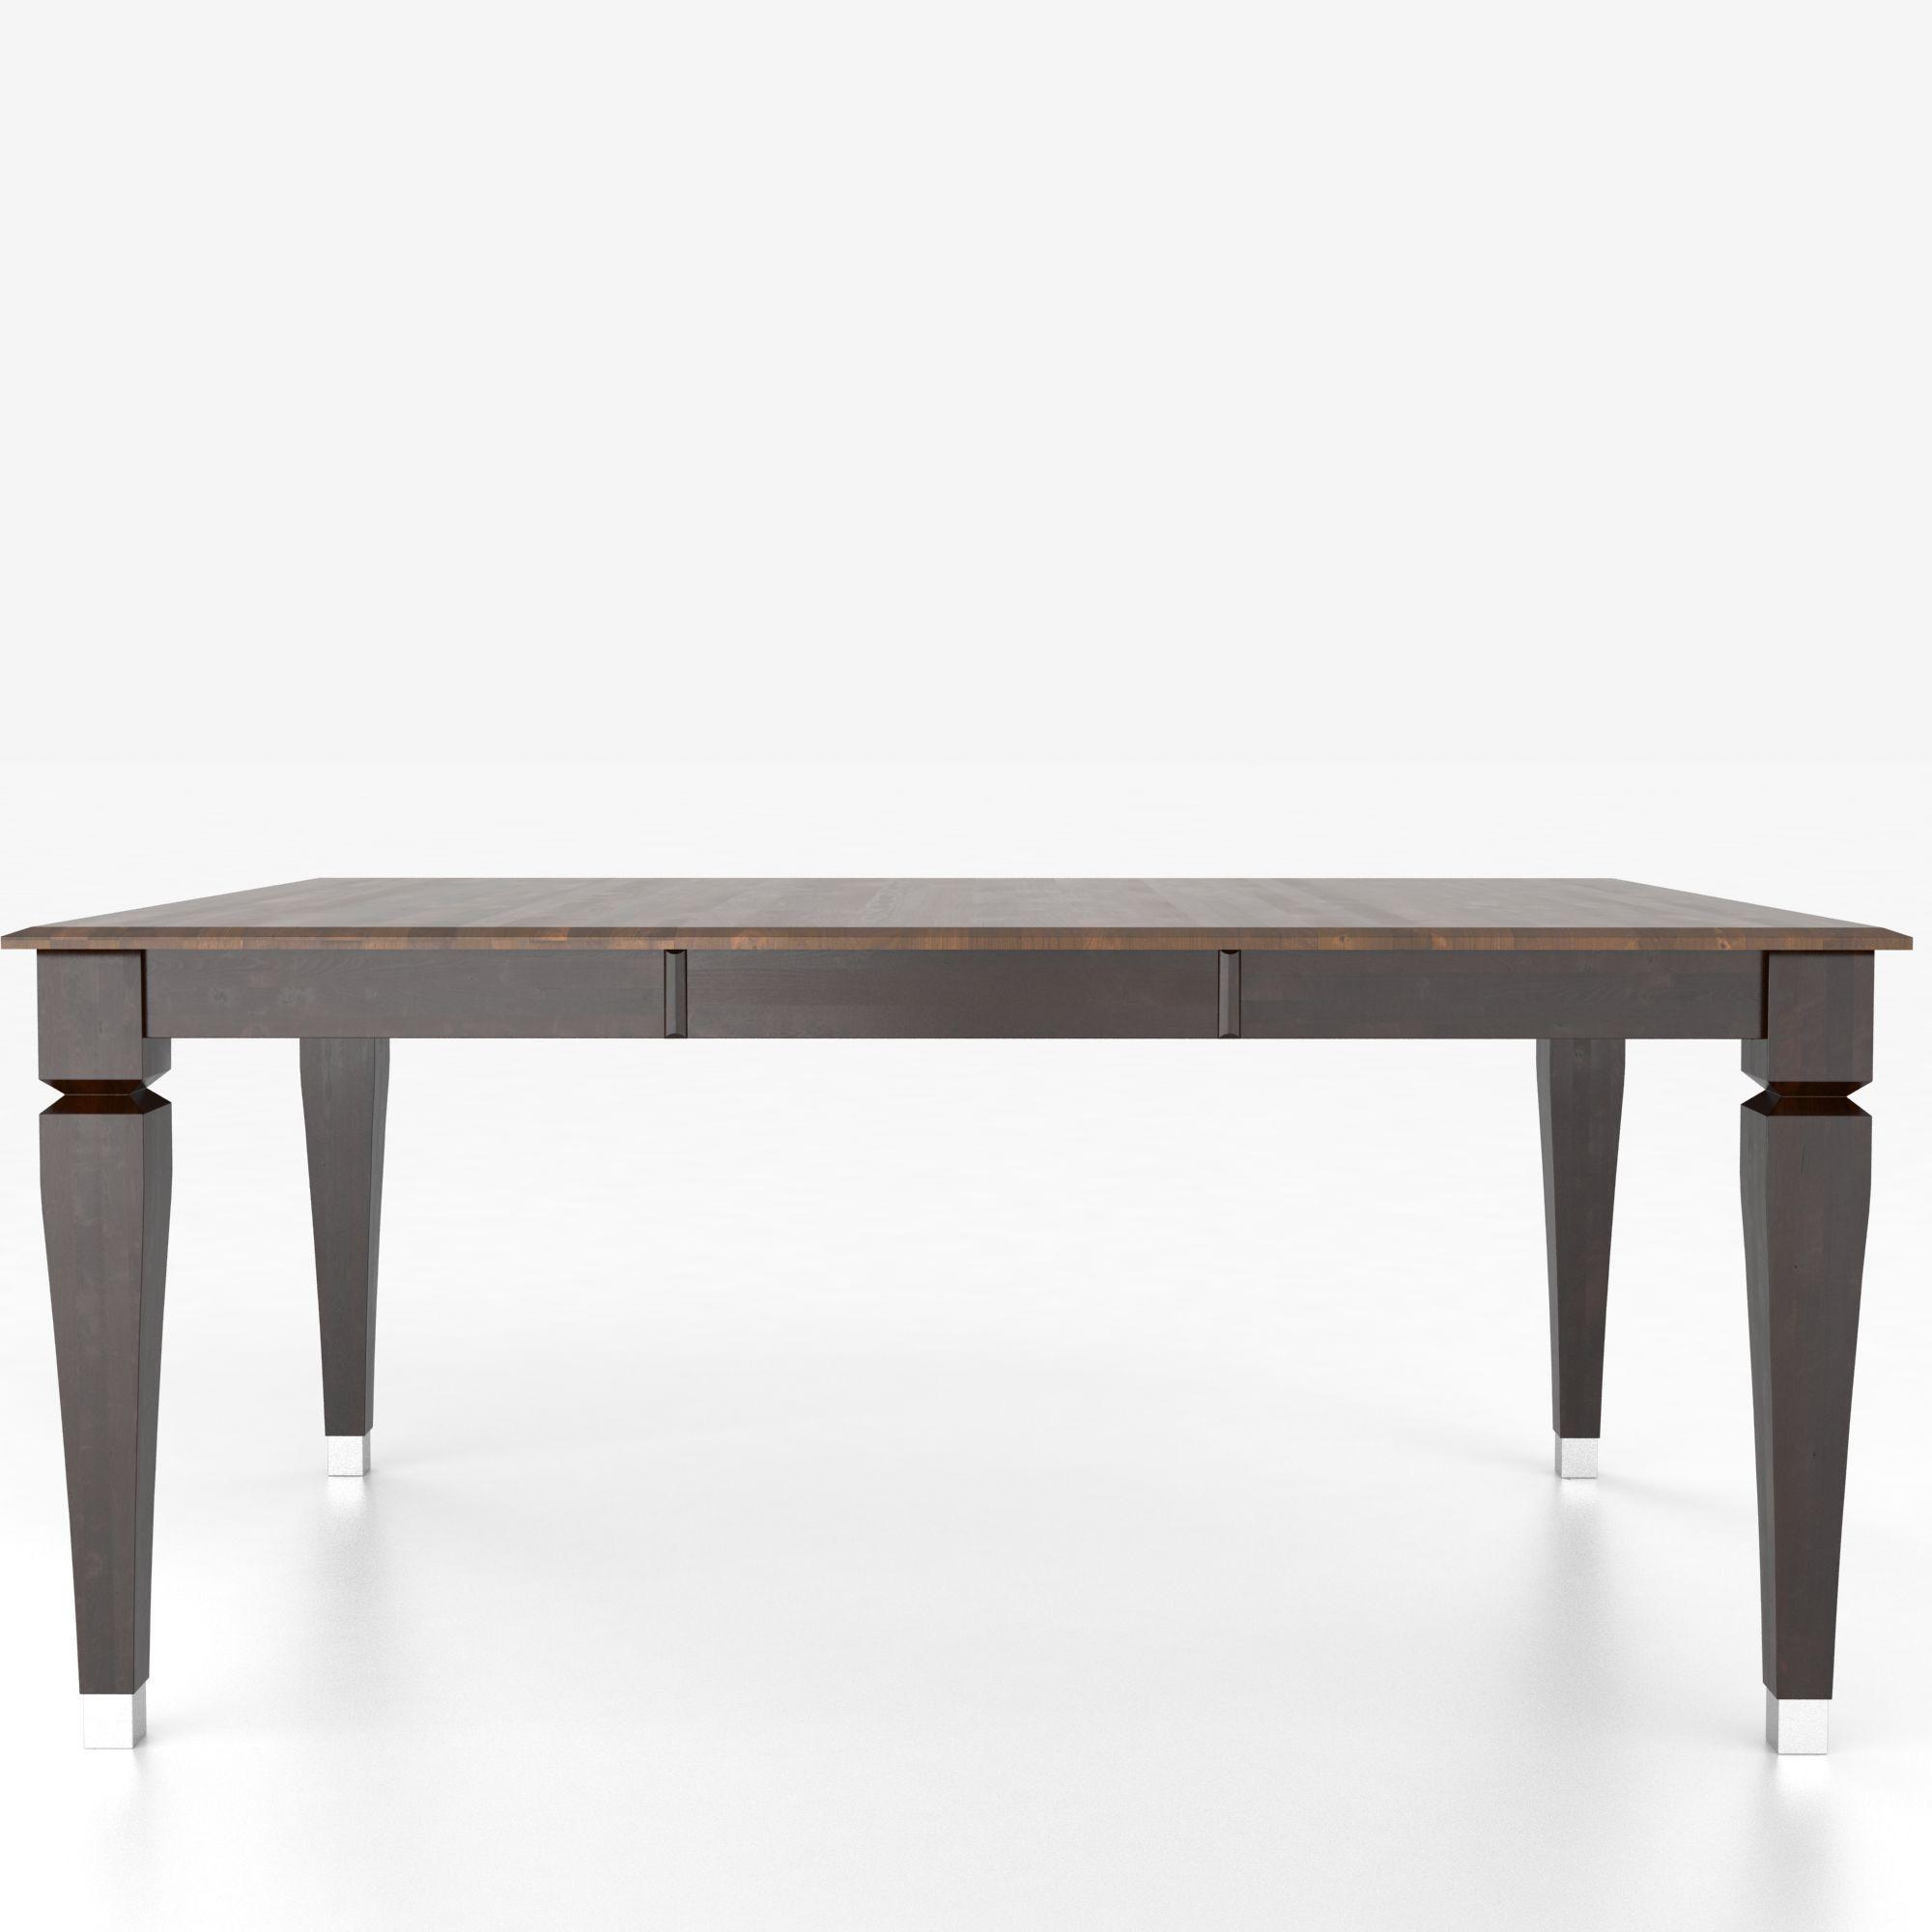 Canadel Custom Dining Tables Customizable Square Table With Legs Belfort Furniture Dining Tables